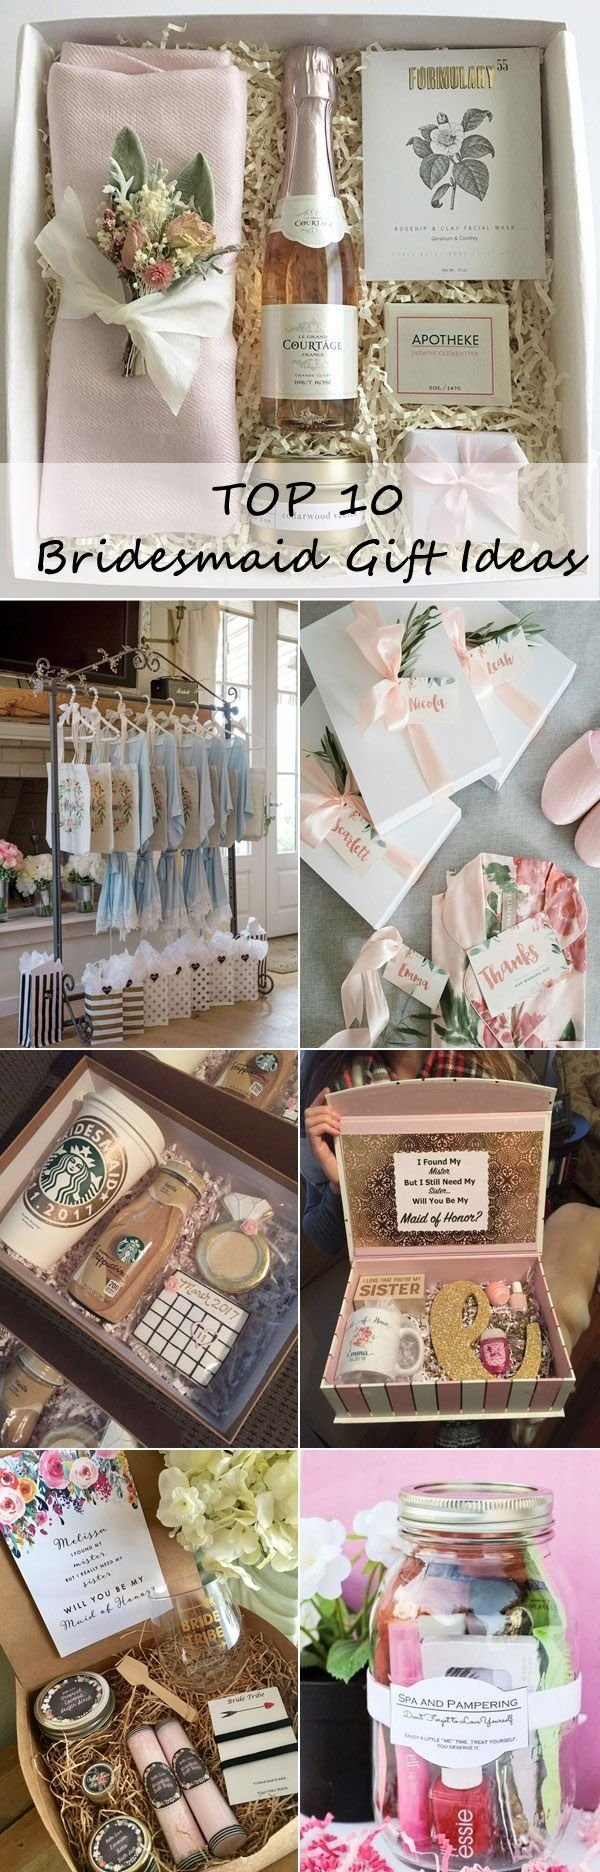 10 Cute Ideas For Bridal Party Gifts top 10 bridesmaid gift ideas your girls will love gift wedding 2020